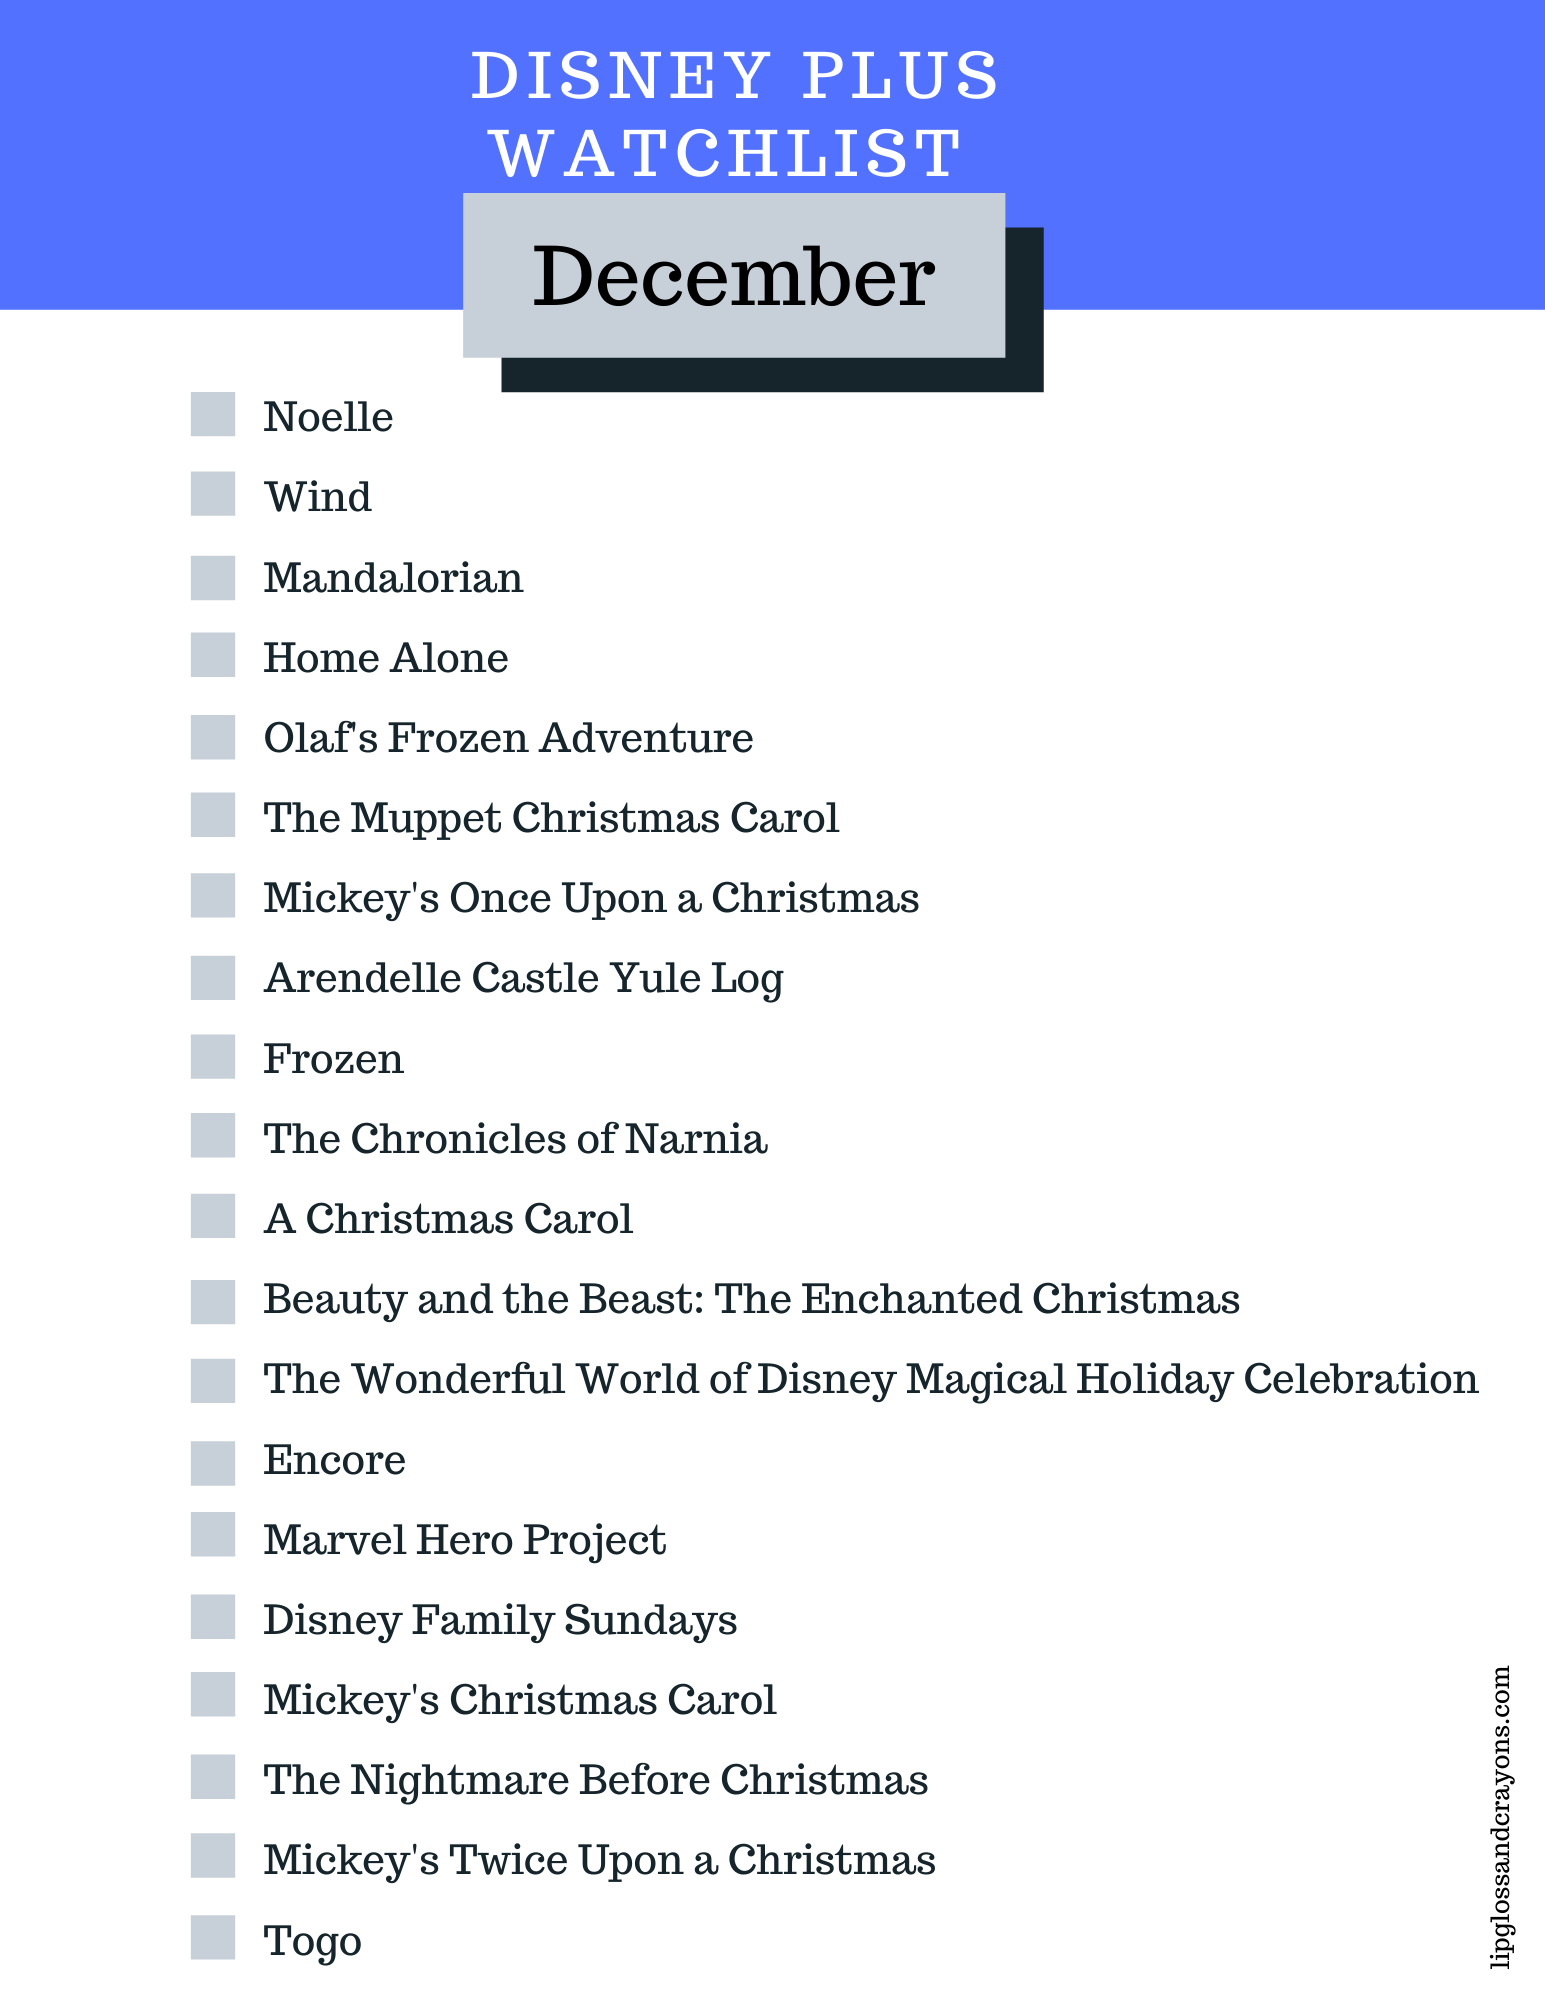 Disney Plus Watchlist December Lipgloss And Crayons In 2020 Disney Plus Movies To Watch Disney Movies List